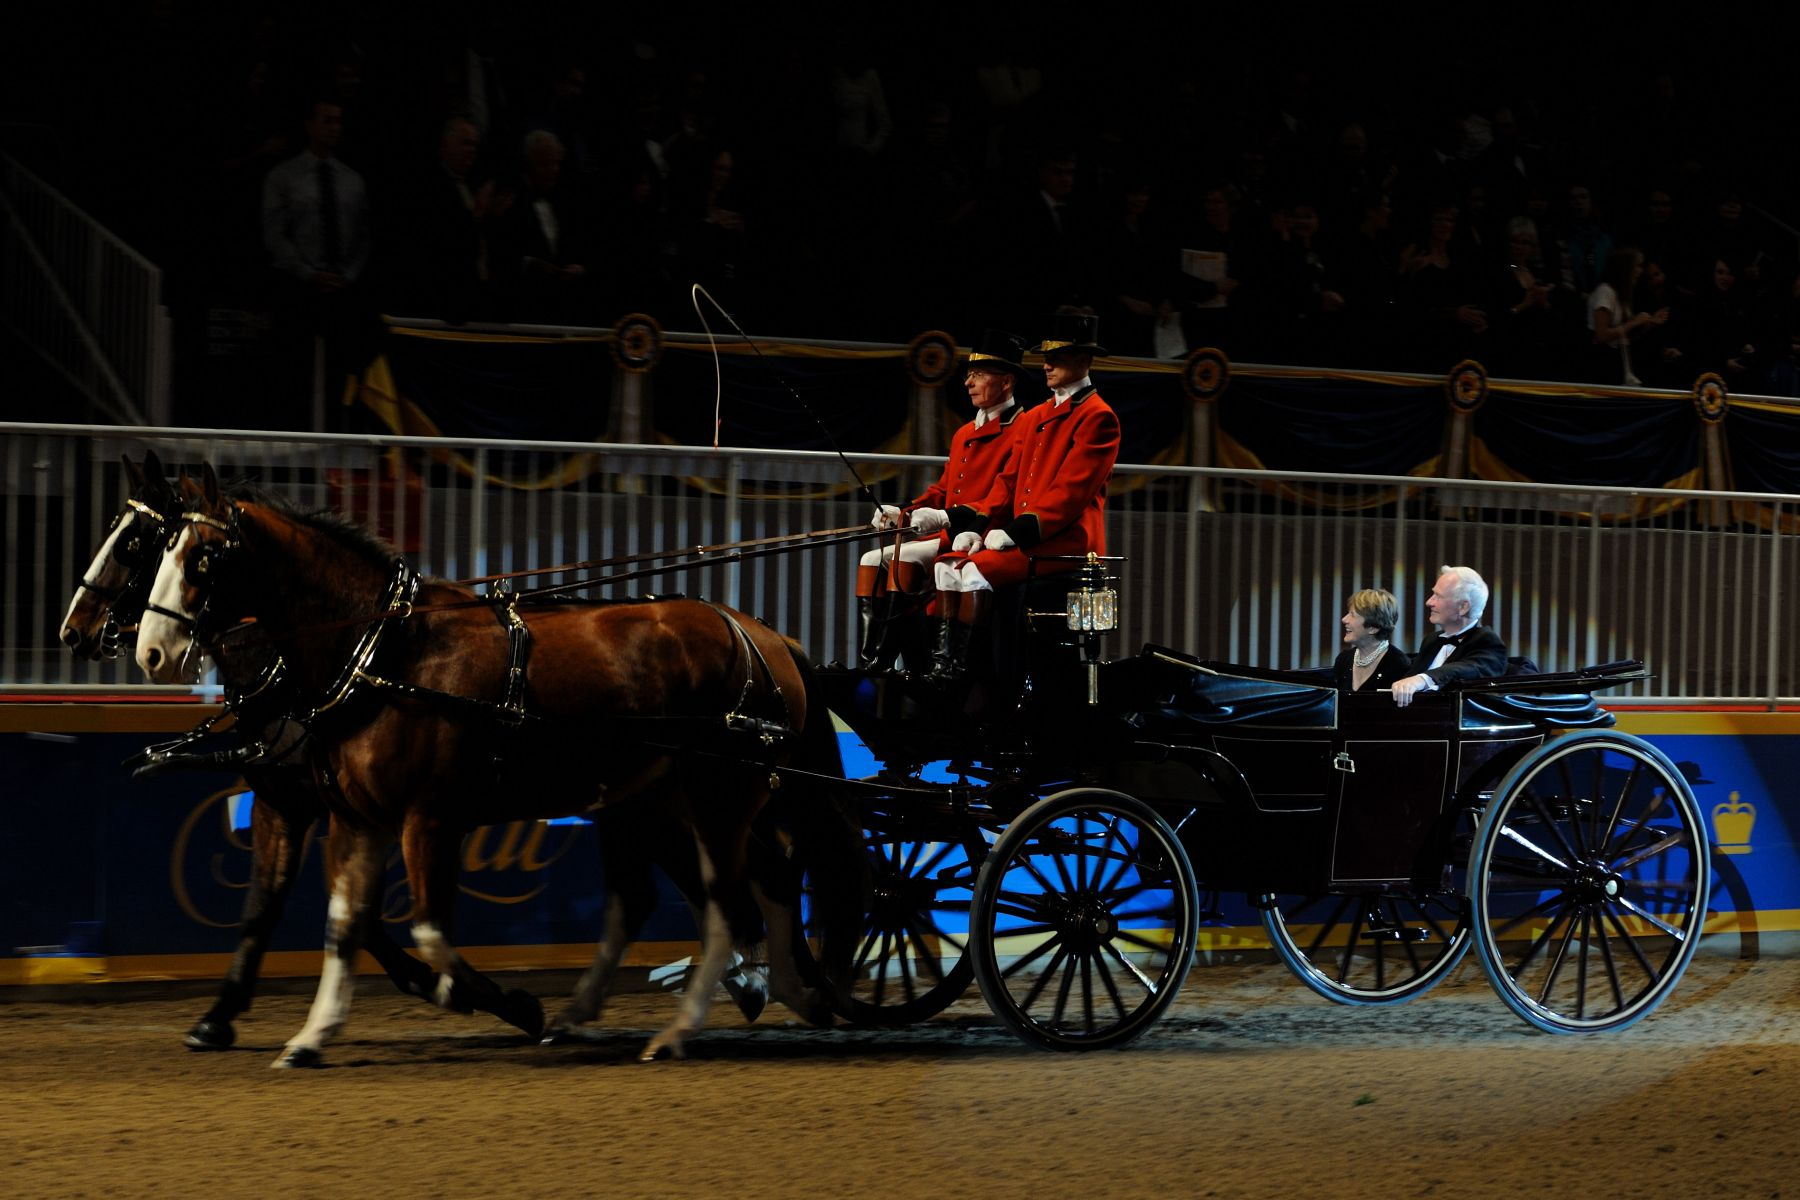 Their Excellencies also attended the Royal Horse Show and arrived by landau.